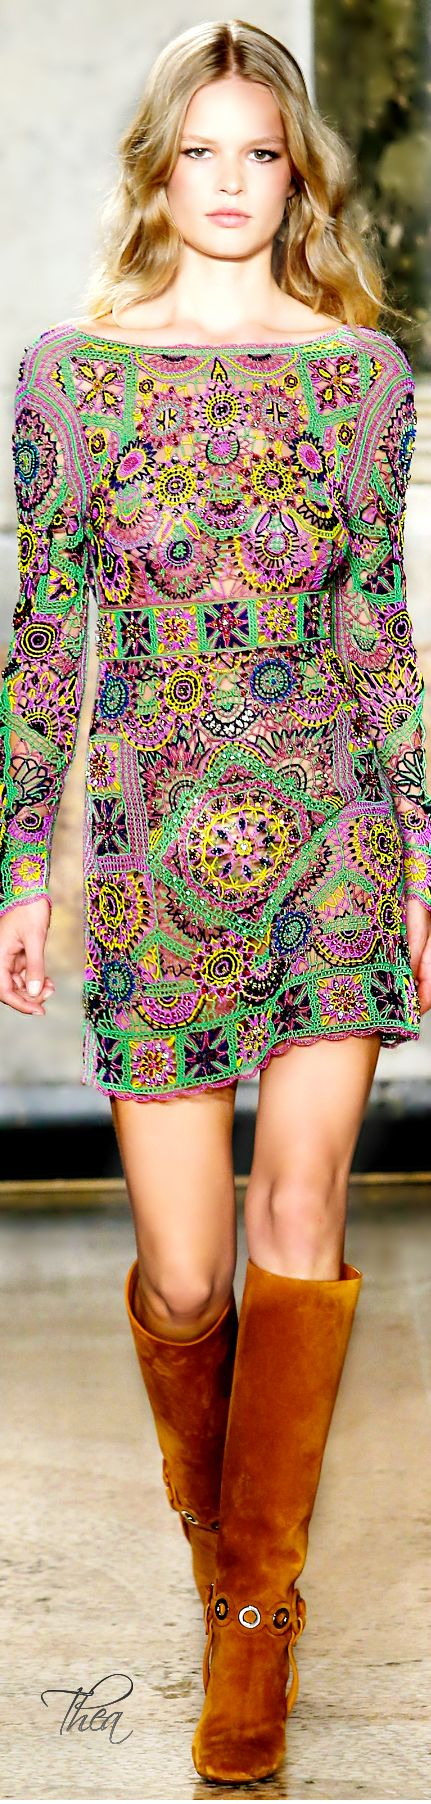 clothes for running Designers Inspired by the 2960s  Emilio Pucci   SS 2015